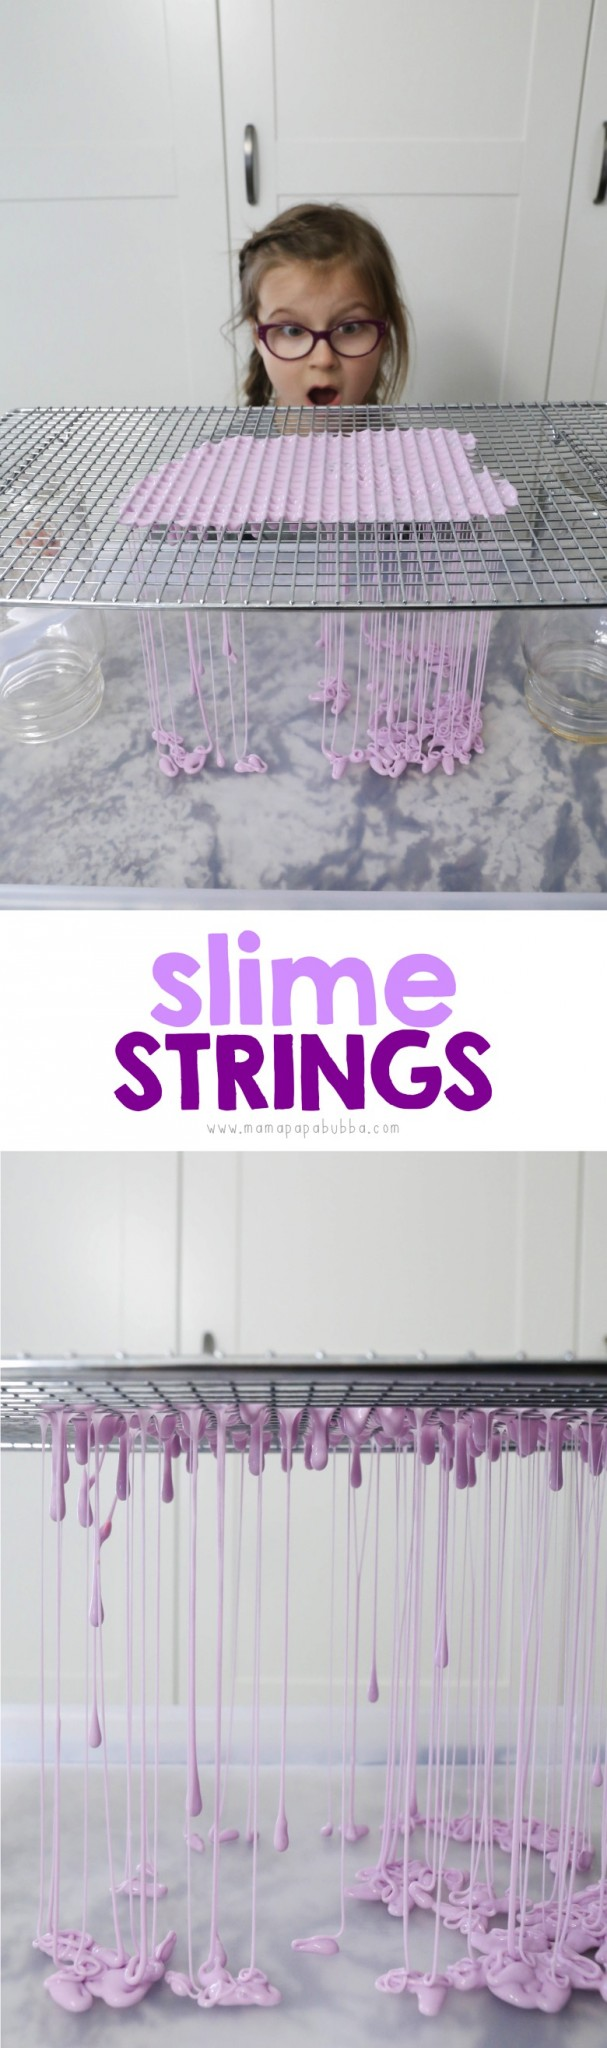 Slime Strings with Slime and a Cooling Rack | Mama Papa Bubba